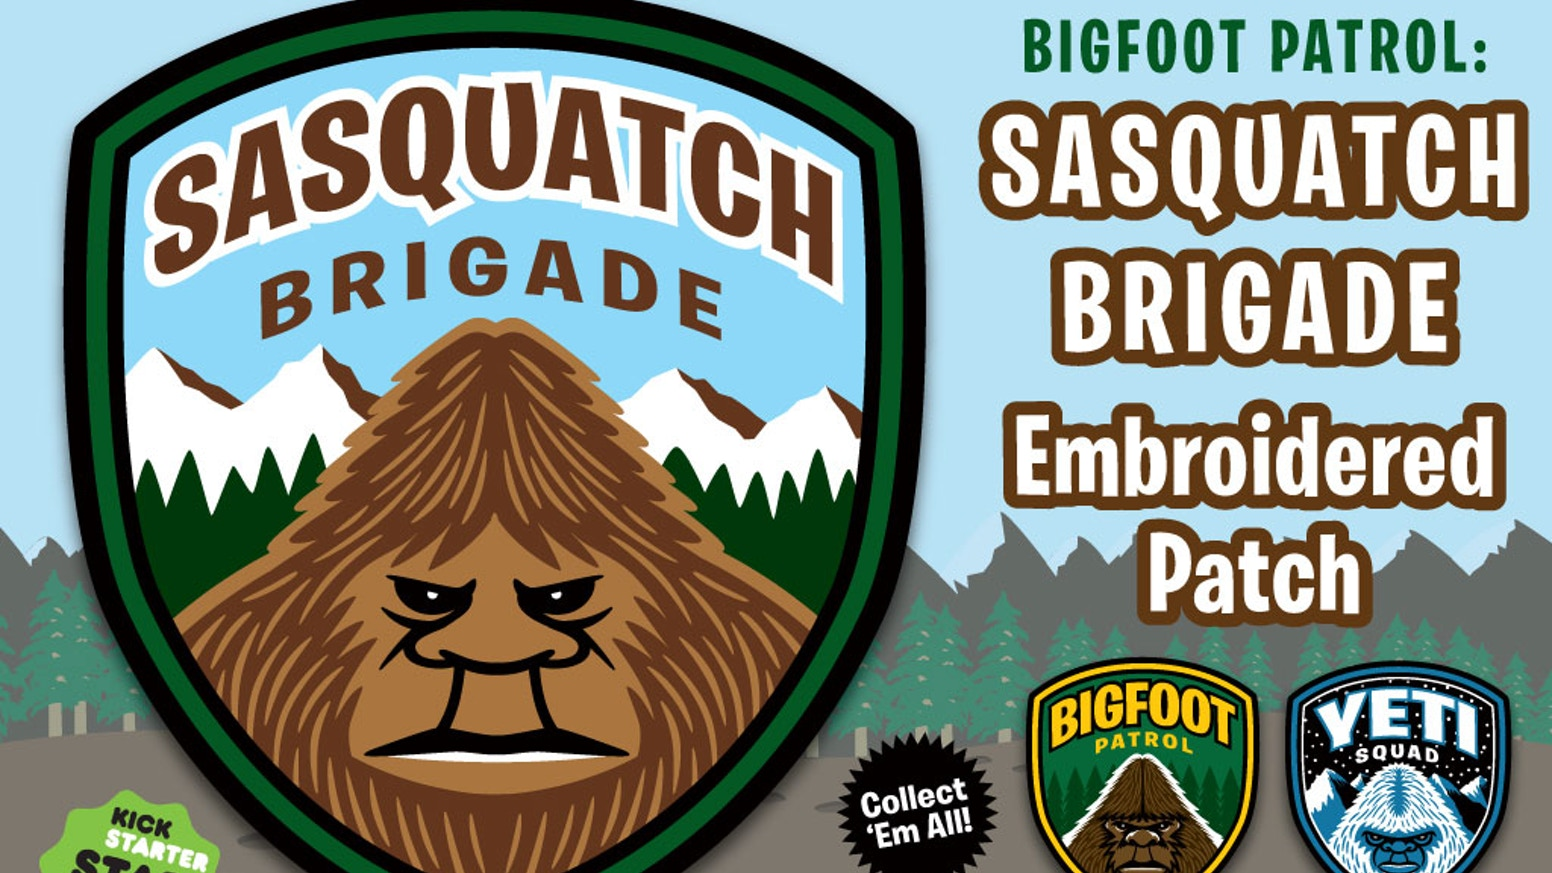 """Sasquatch Brigade"" embroidered patch #3 in Bigfoot/Yeti paranormal/cryptid art merch kit, original art. Velcro! Backpack/EDC ready."